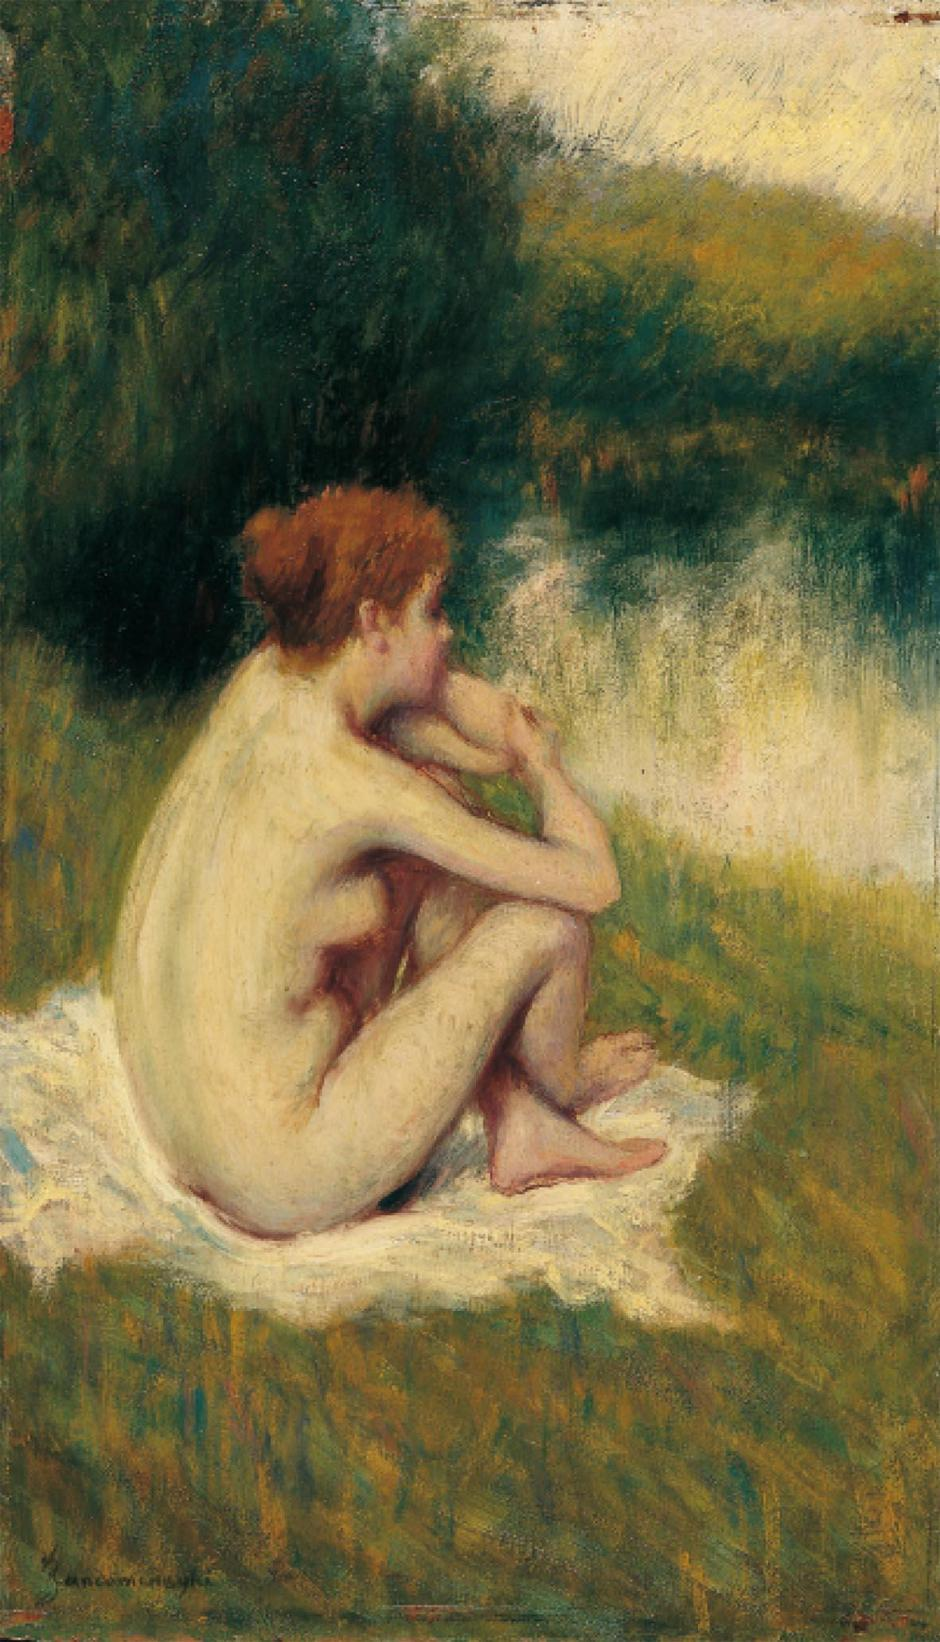 Federico Zandomeneghi, After the Bath (date unknown), oil on canvas, further details unknown. WikiArt.